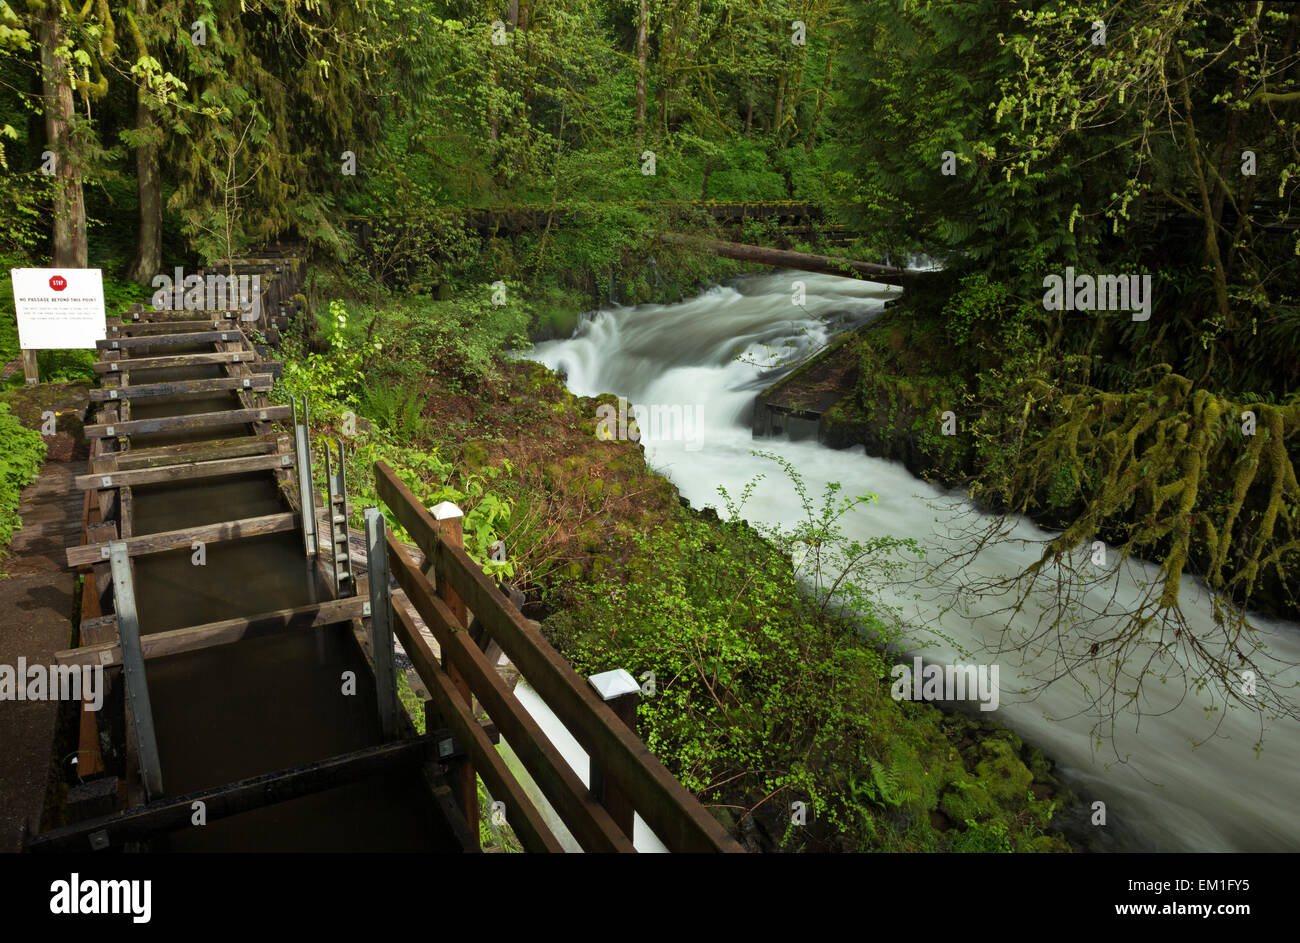 WA10293-00...WASHINGTON - The Cedar Creek and a sluice above the historic Cedar Creek Grist Mill. - Stock Image